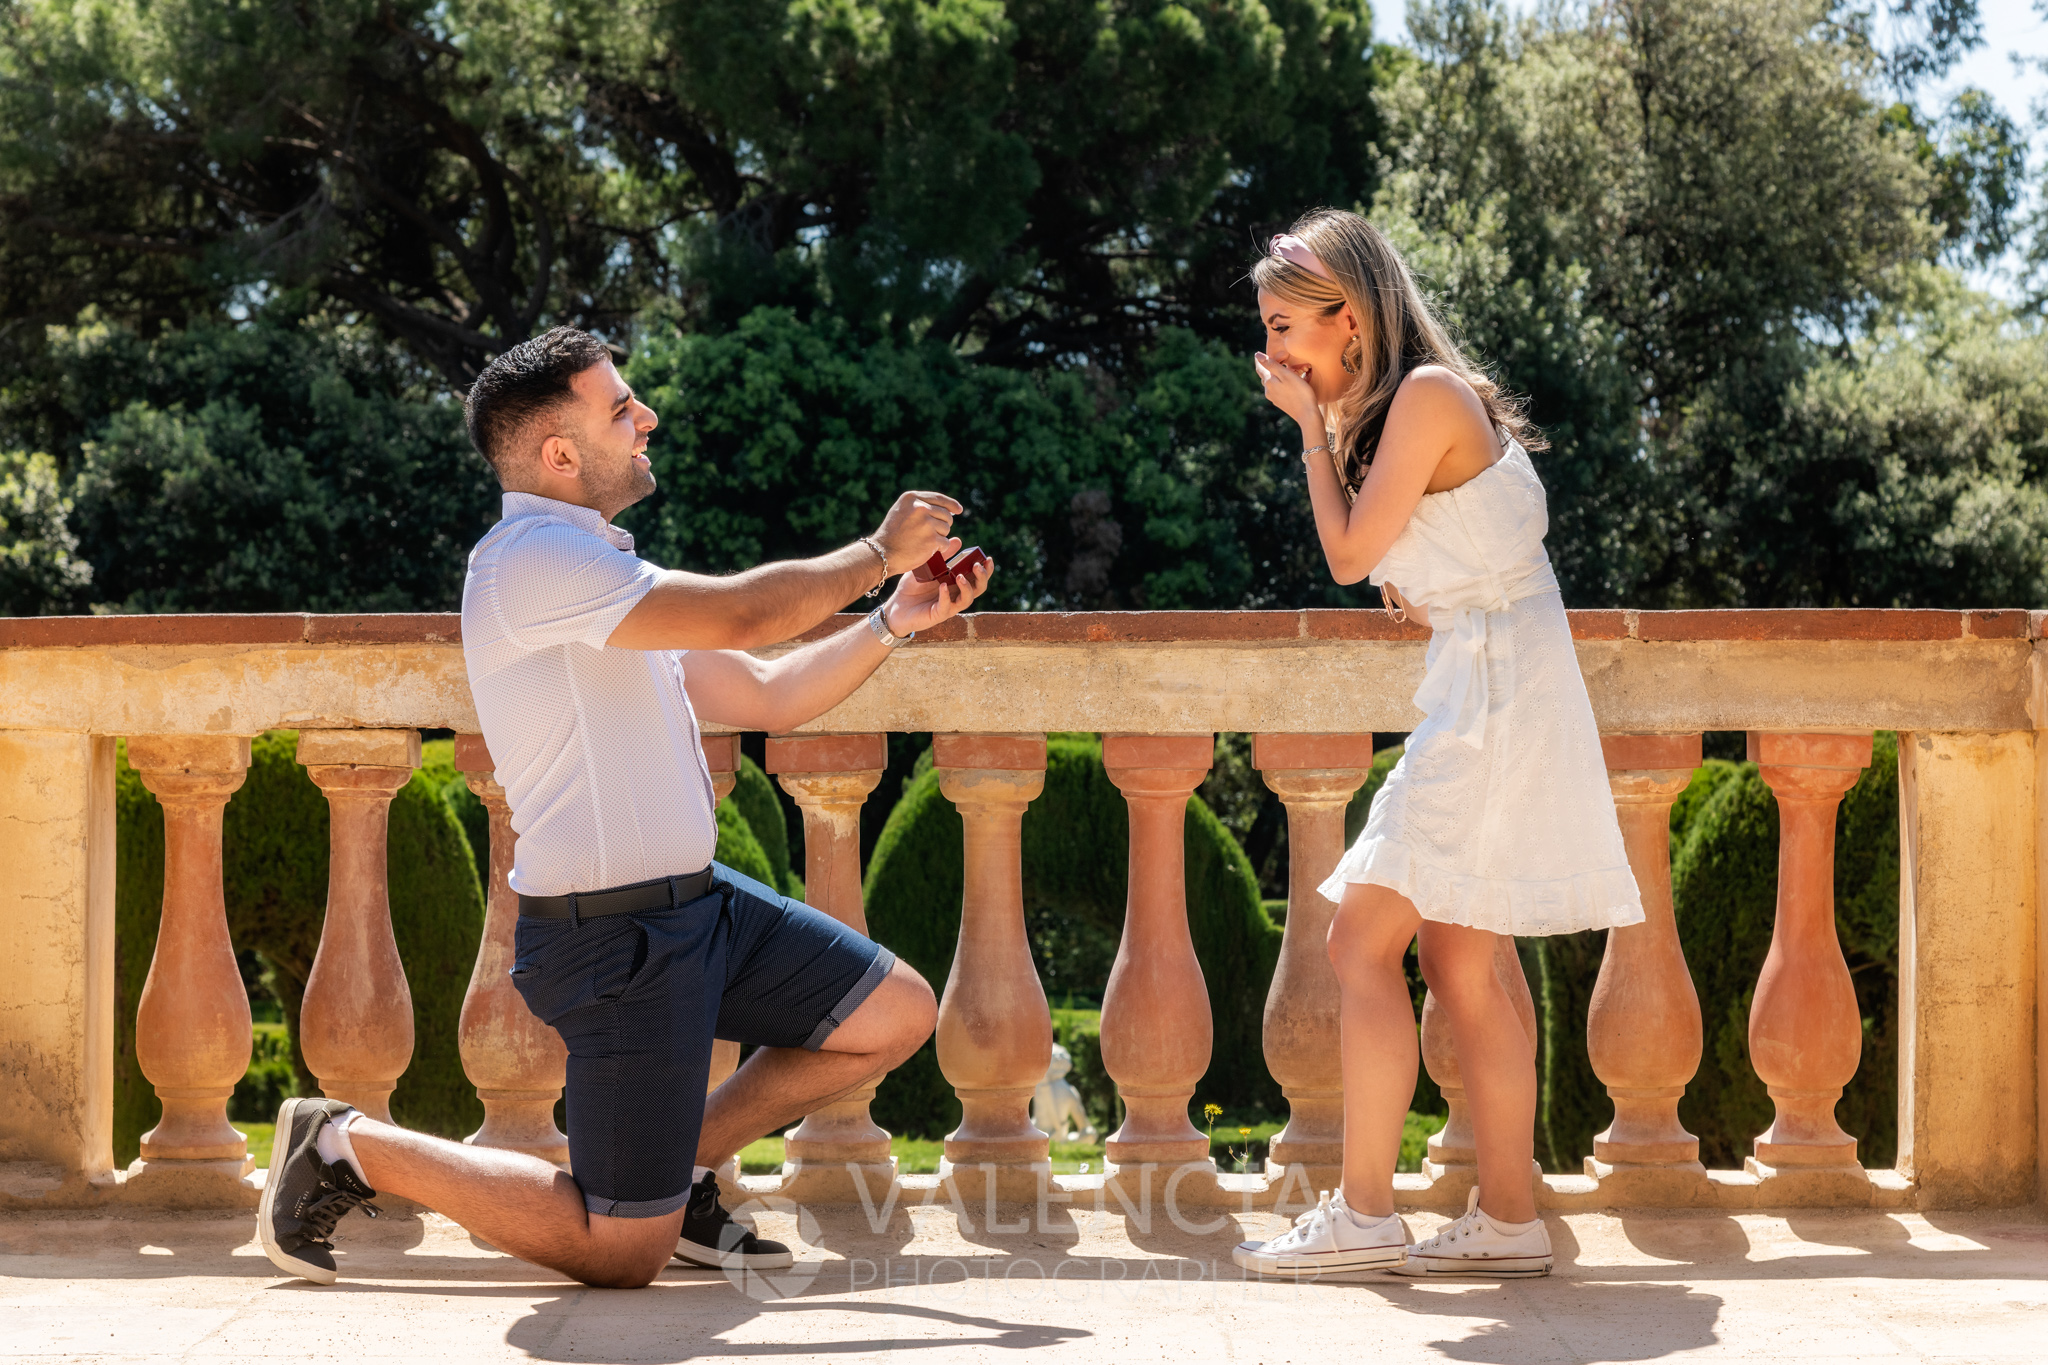 Personal Photographer in Valencia